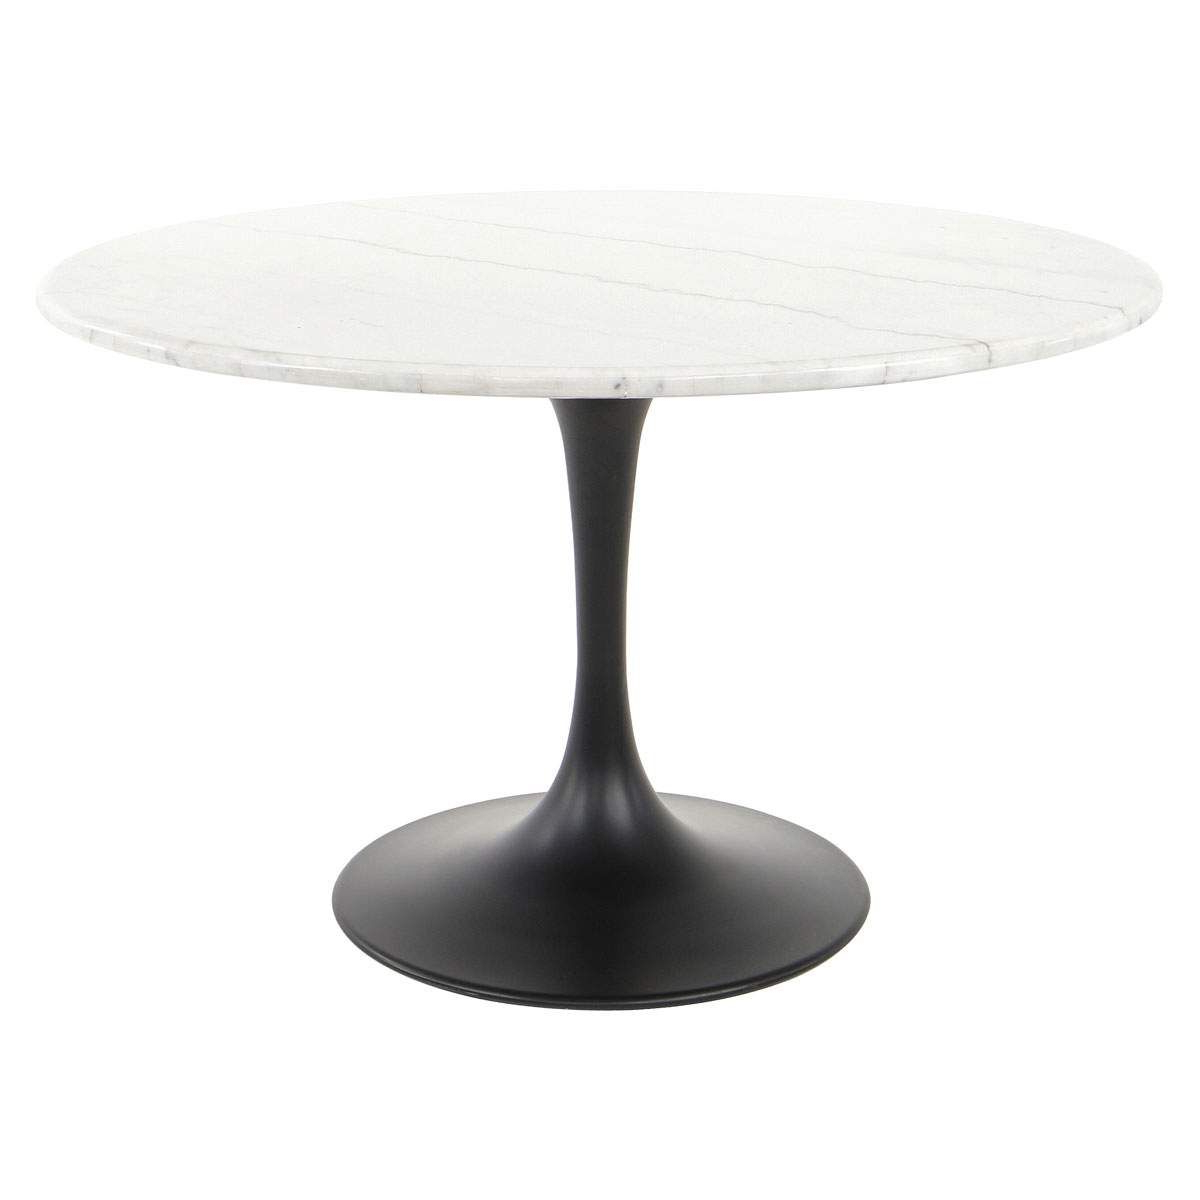 909 with Chapman Marble Oval Dining Tables